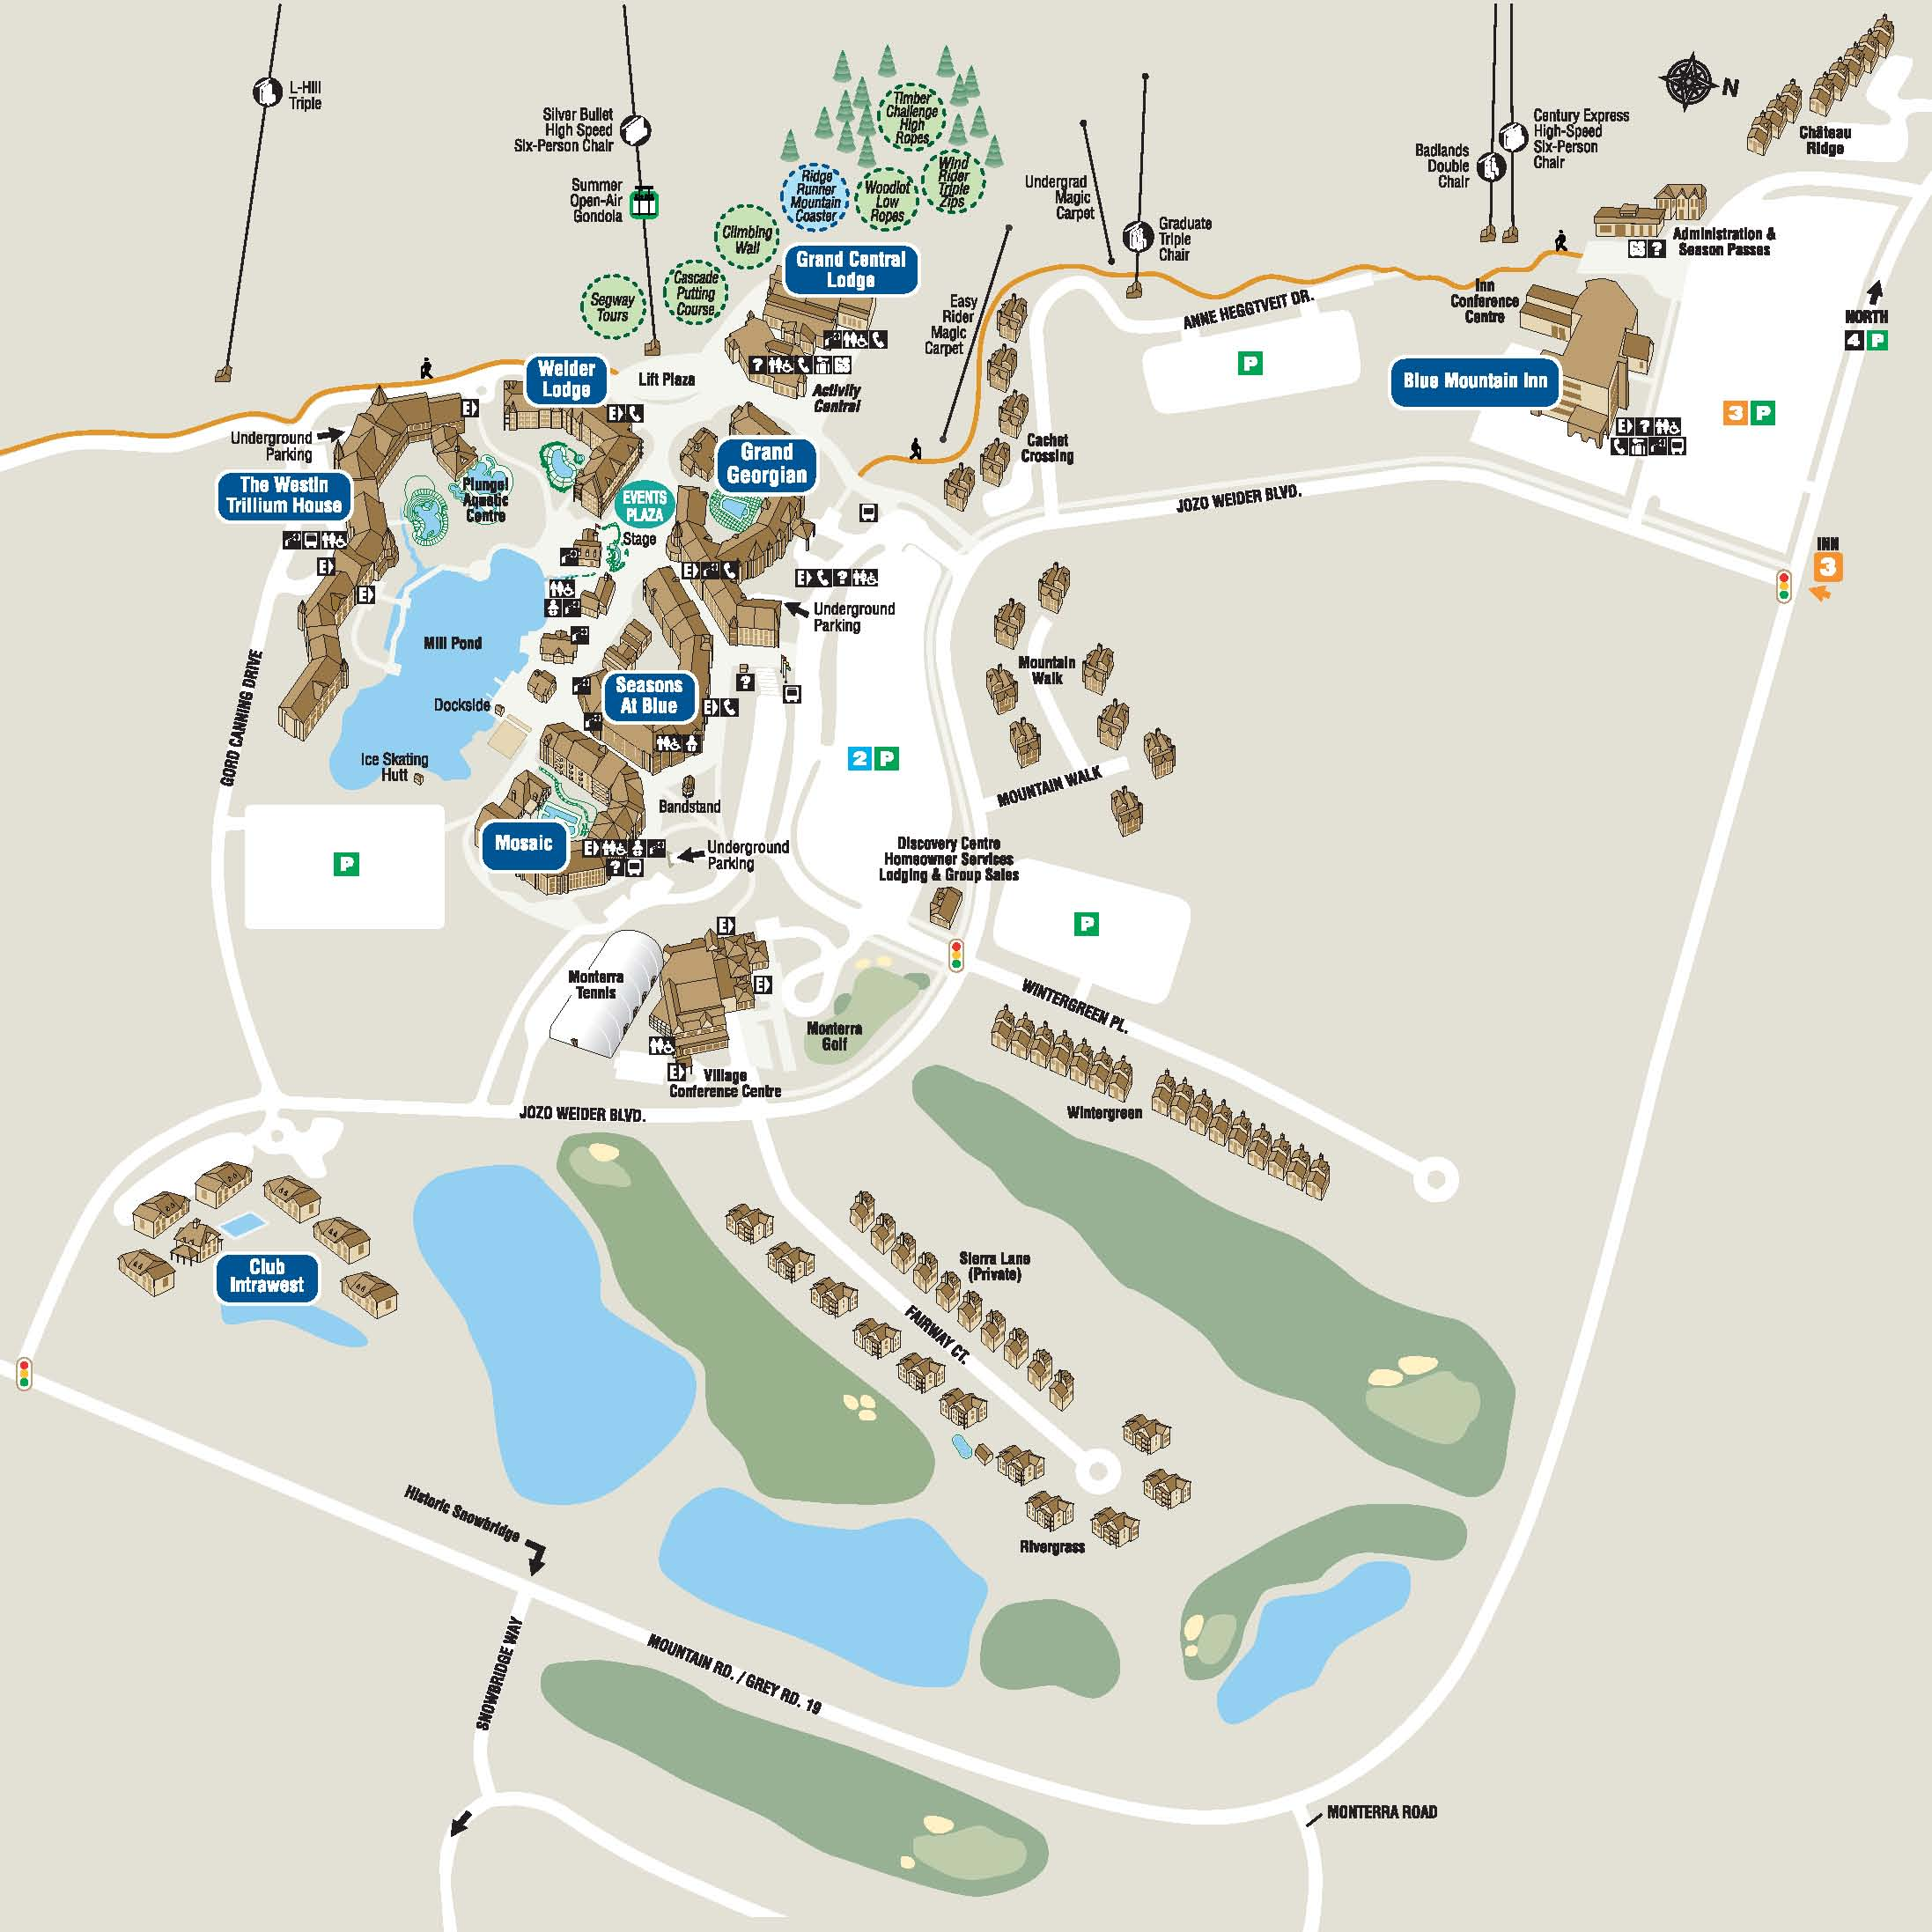 Blue Mountain Resort Map